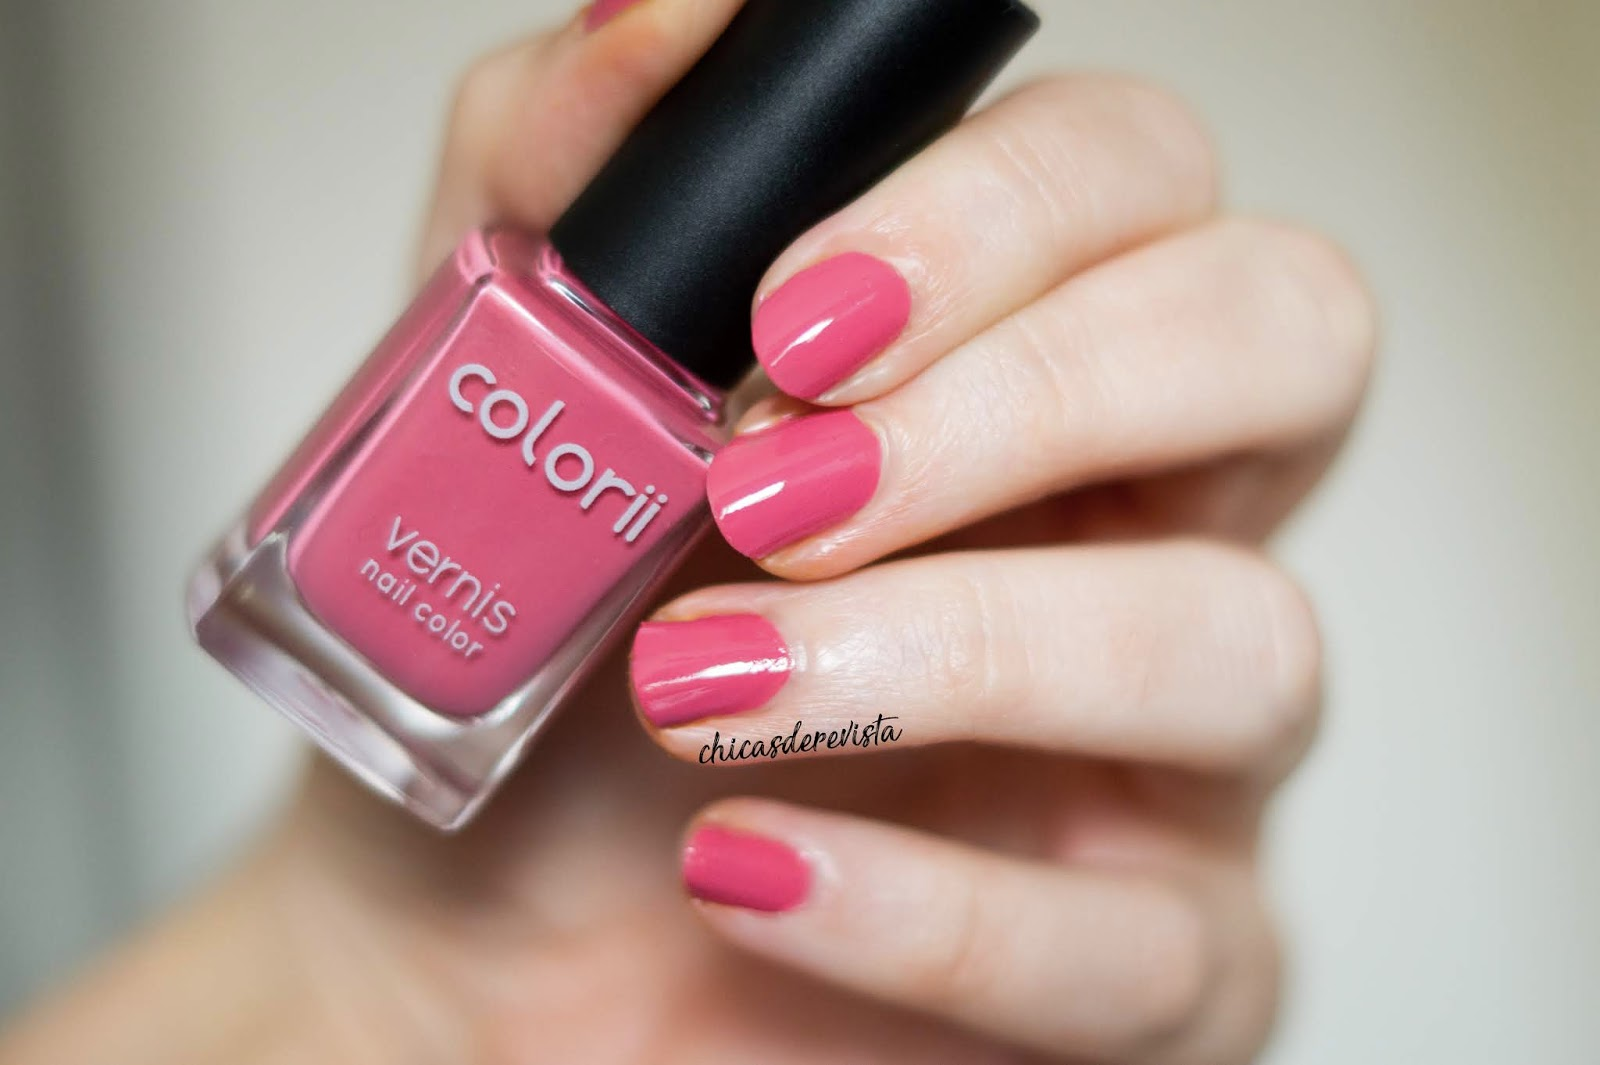 vernis Colorii Toulouse